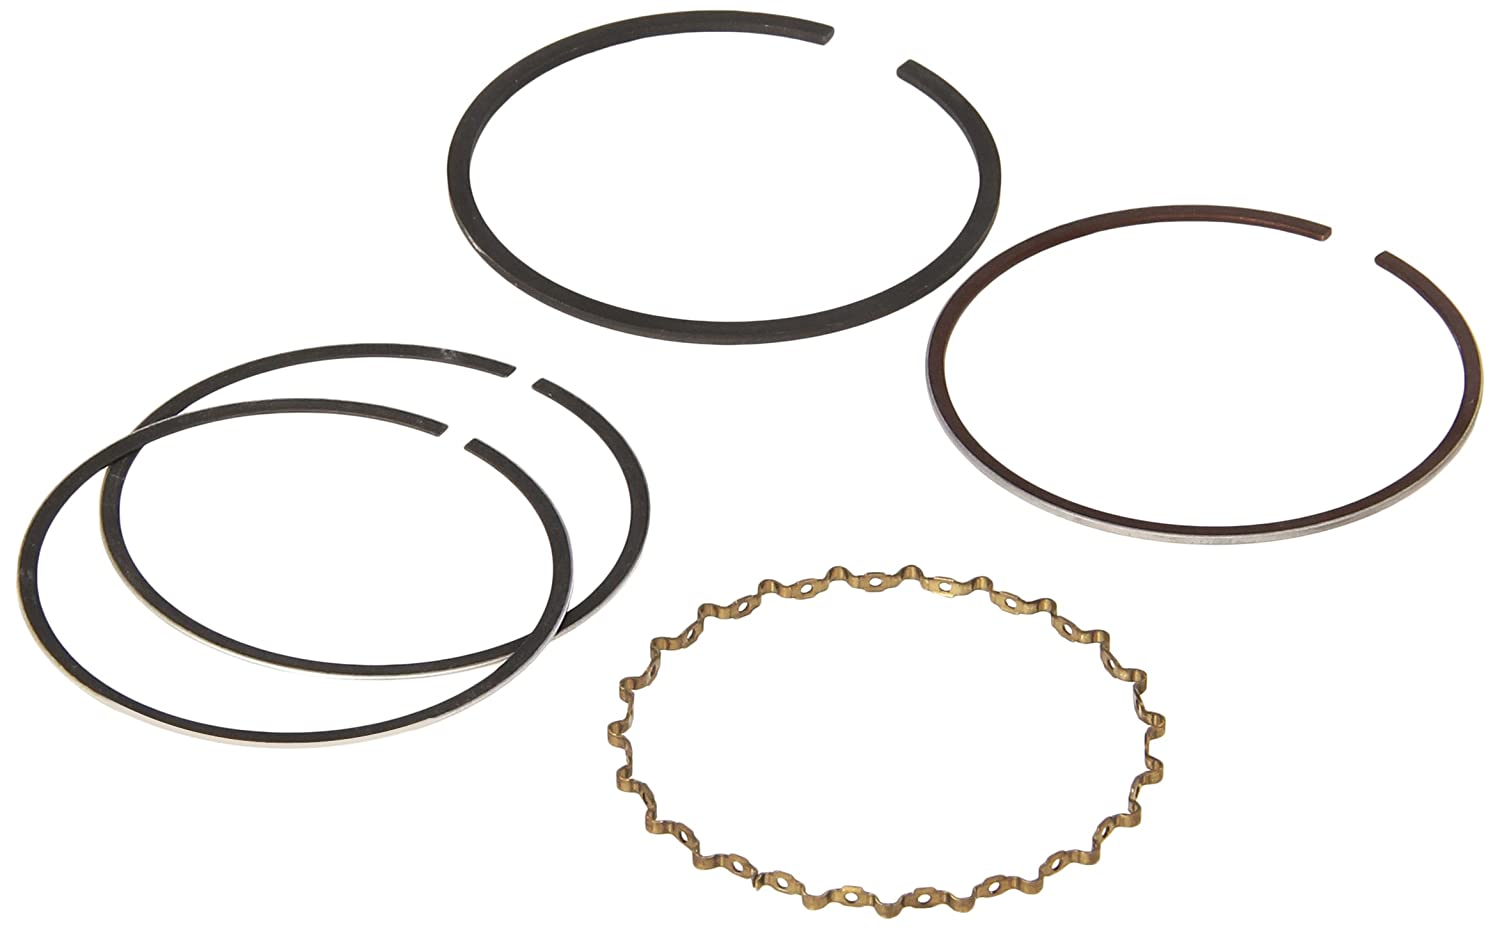 Wiseco 1890XE Ring Set for 48.00mm Cylinder Bore